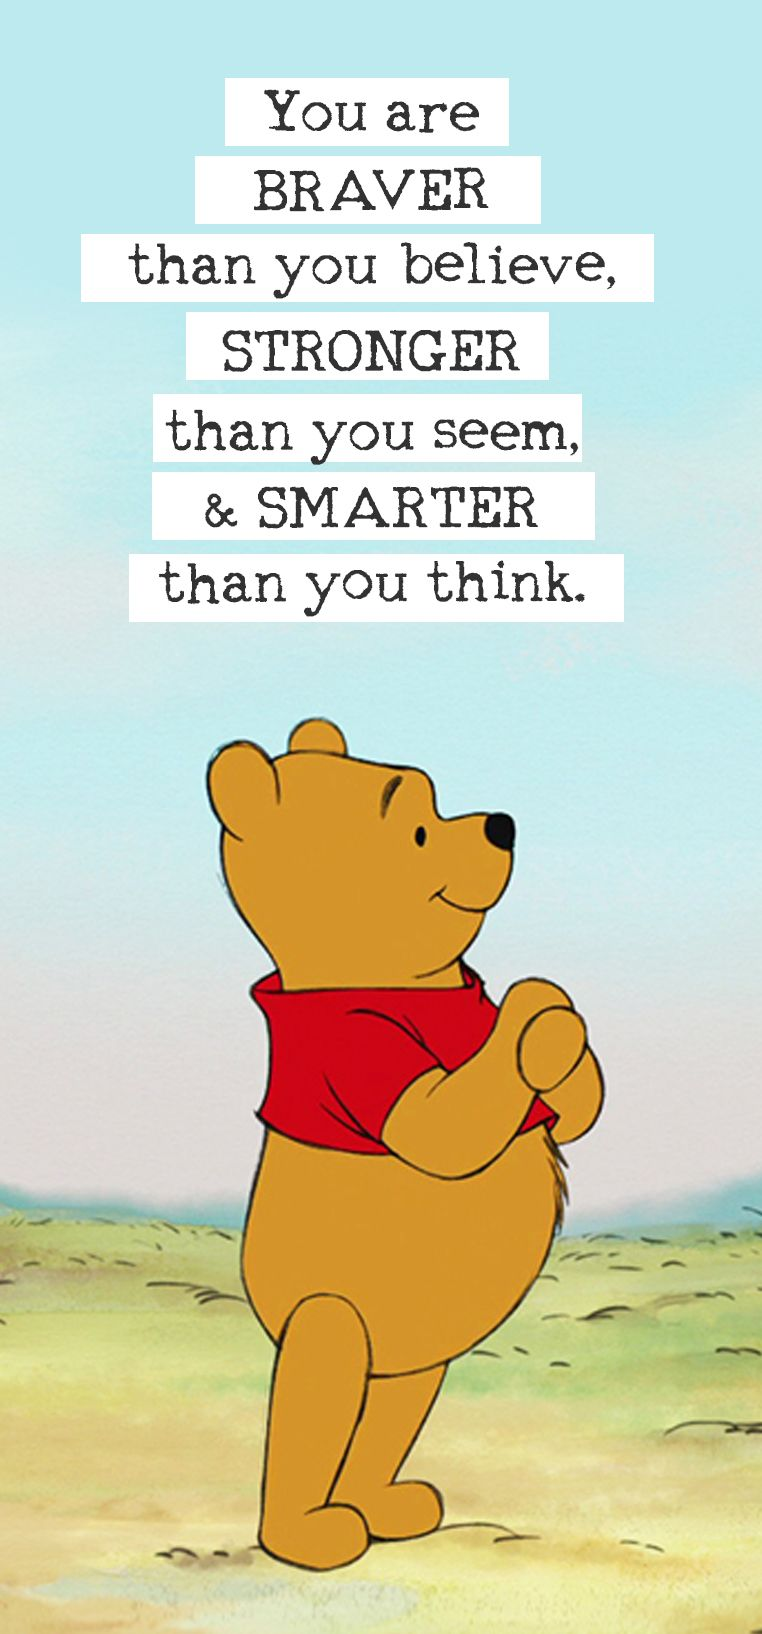 Winnie The Pooh Quotes About Life What Kind Of Journey Your Life Is